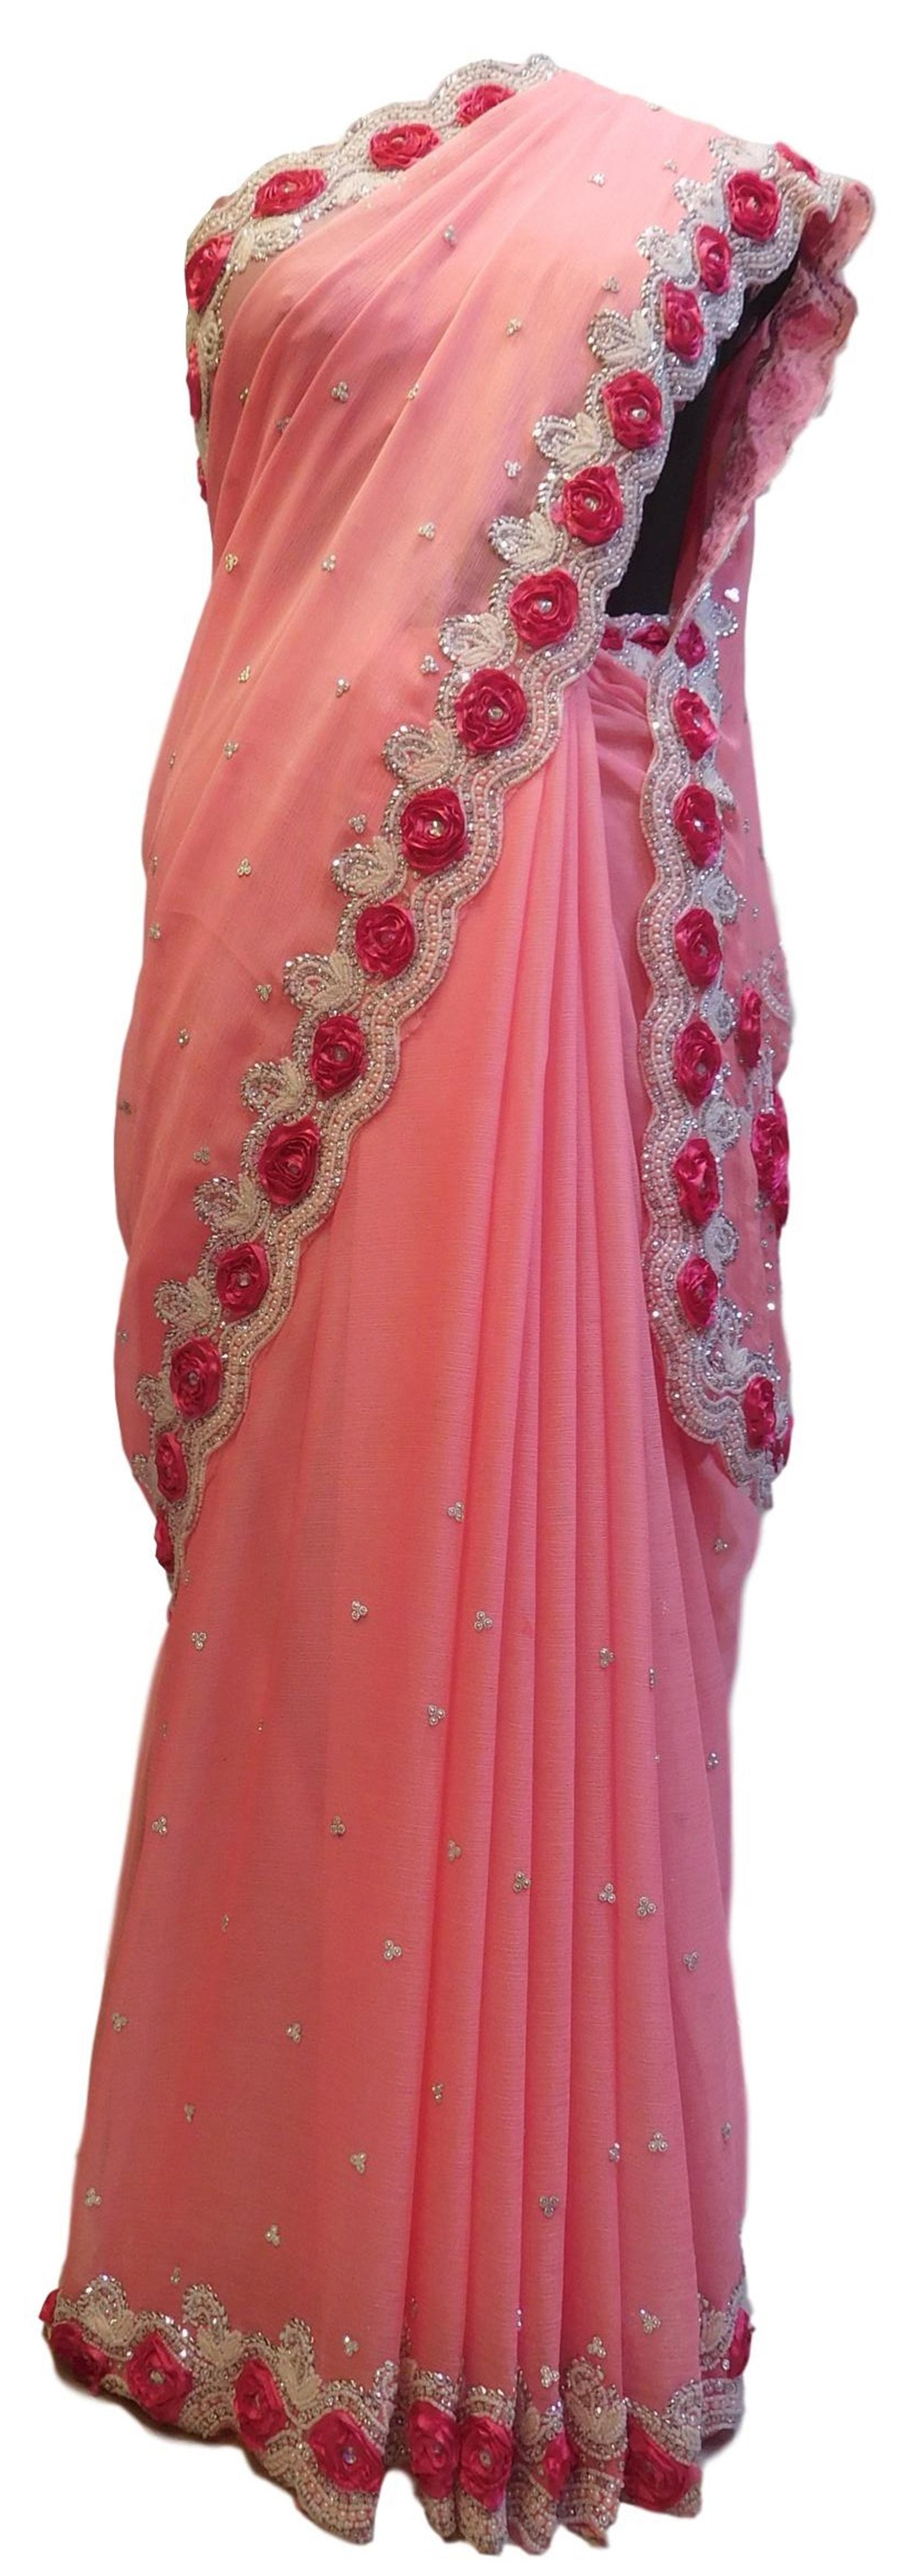 Peach Designer Bridal PartyWear Georgette Thread Beads Stone Work Wedding Cutdwork Border Saree Sari